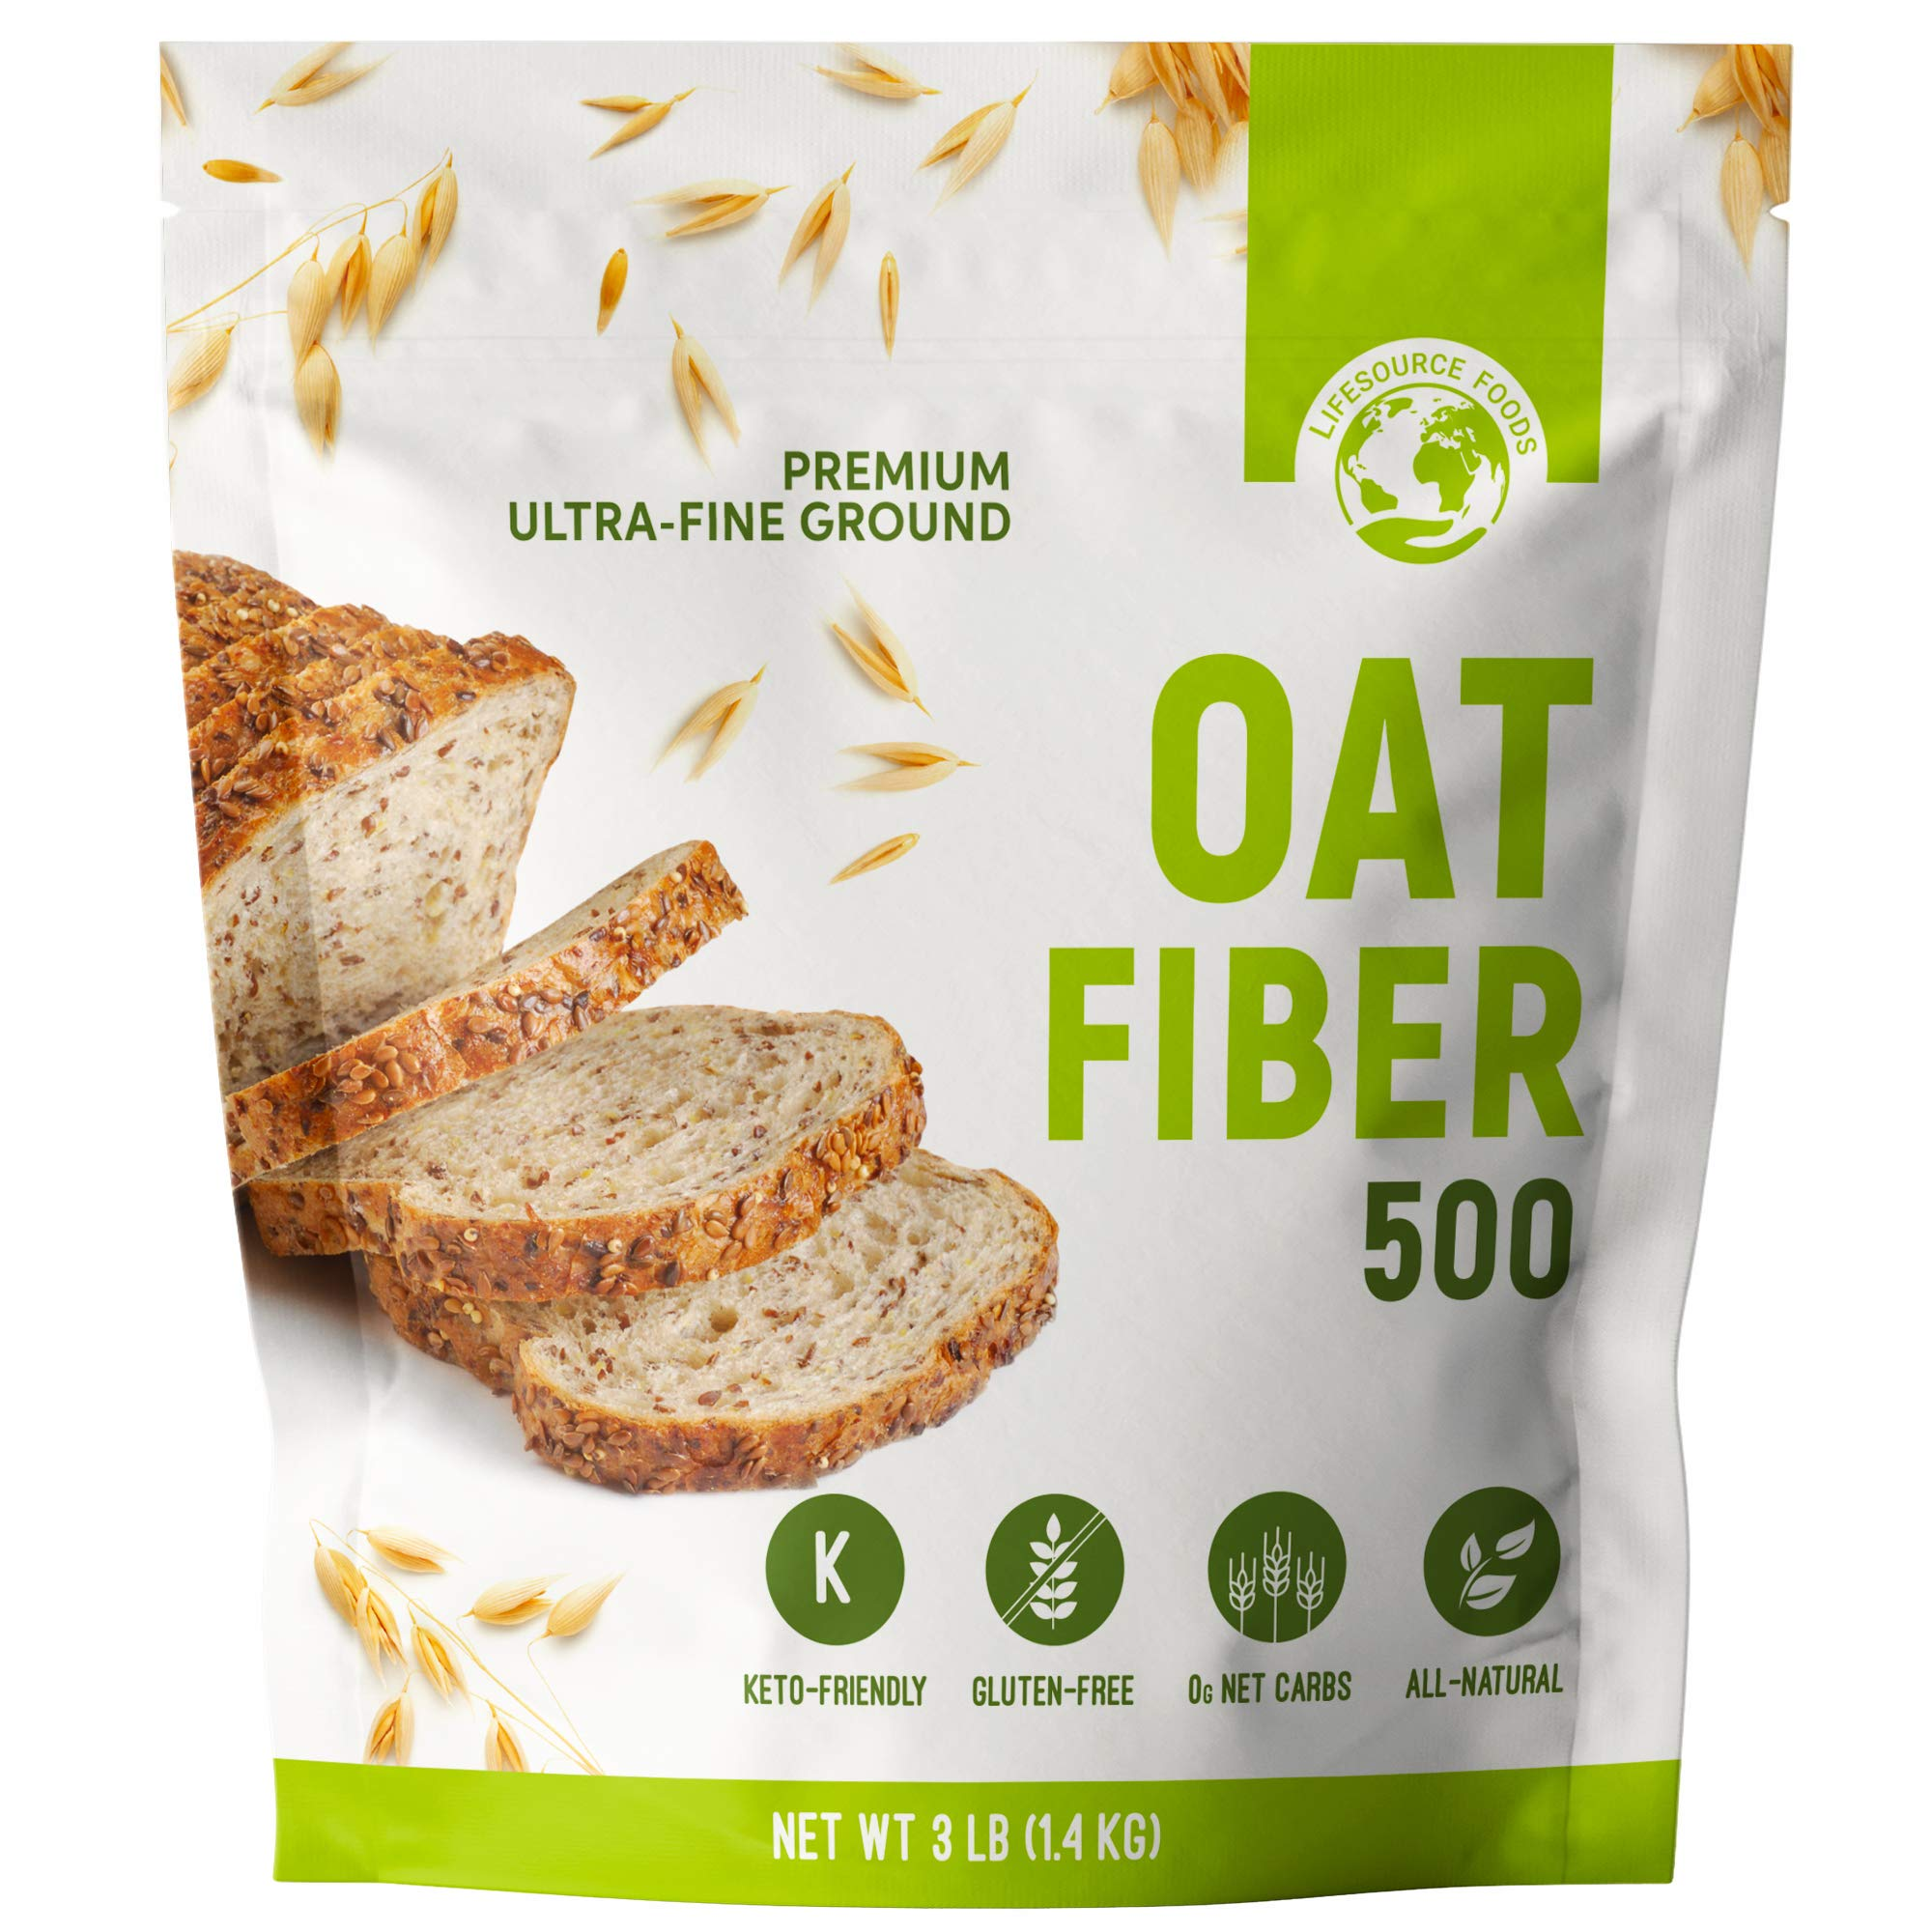 LifeSource Foods Oat Fiber 500 (3 LB) Keto, Zero-Carb, Gluten-Free, All-Natural Fiber for Low-Carb Baking and Bread, OU Kosher, Resealable Pouch